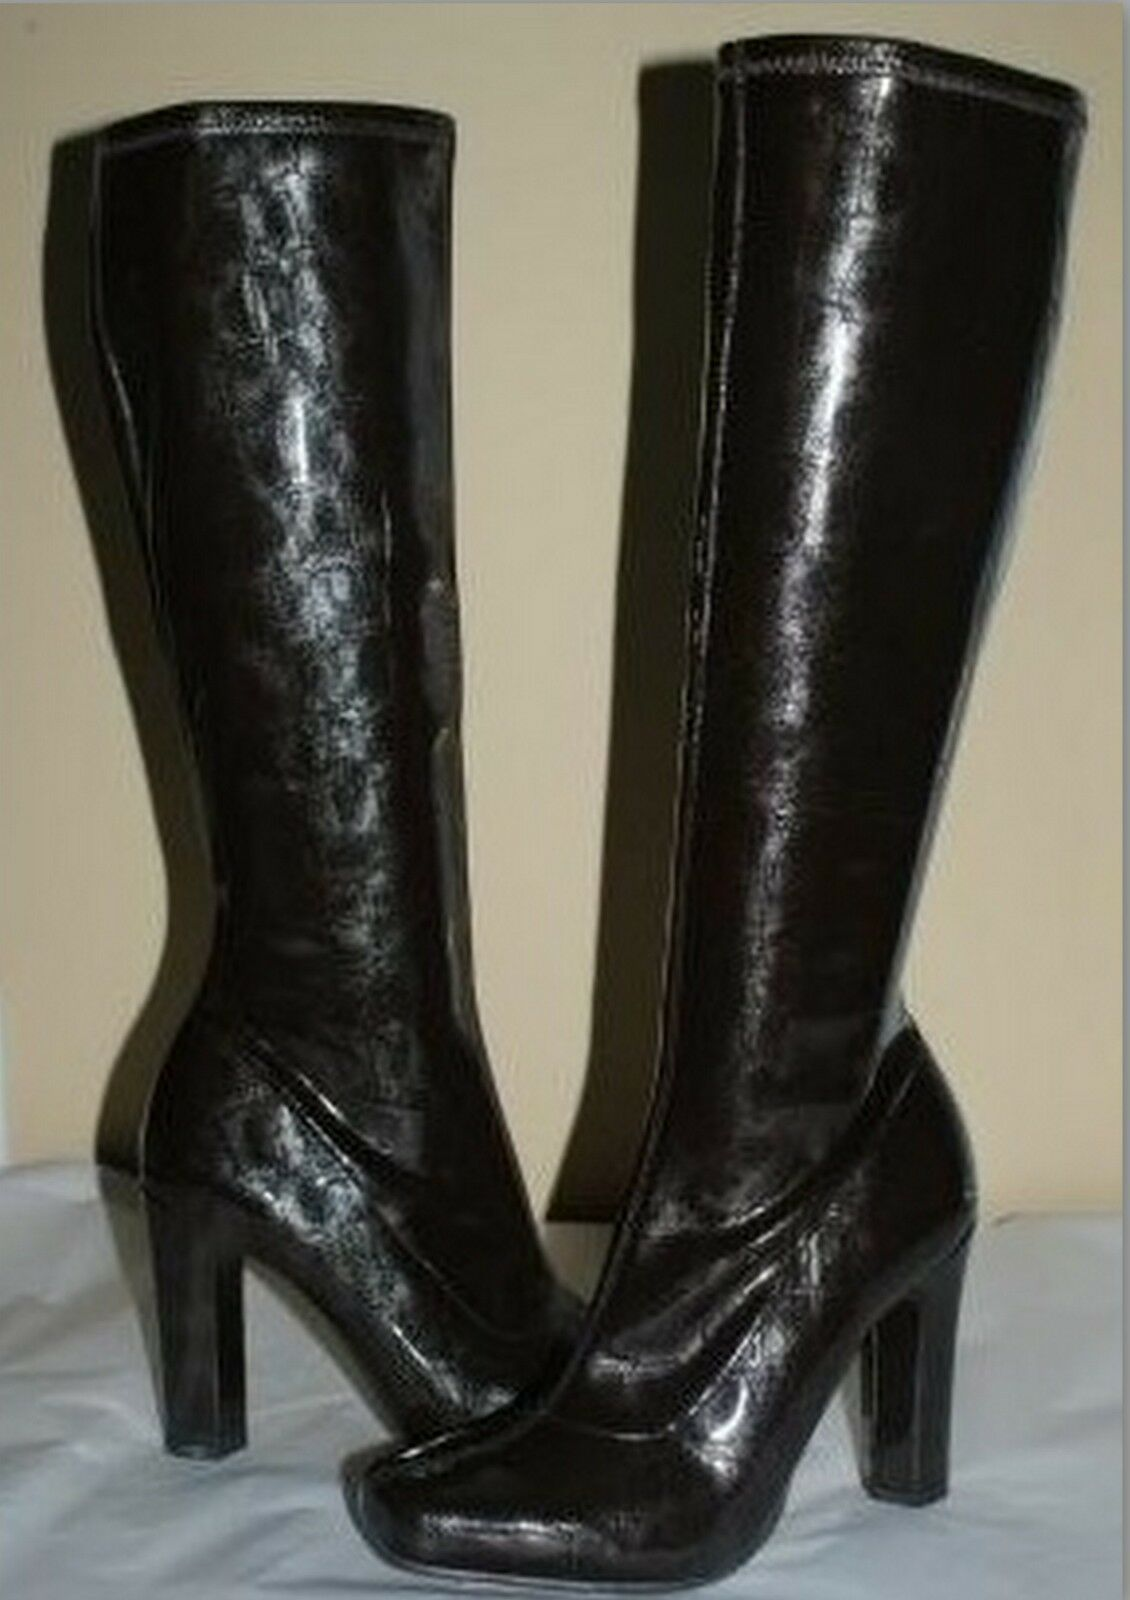 BCBGIRLS DINAY DARK BROWN STRETCH SHINNY PATENT LEATHER KNEE HIGH BOOTS 7